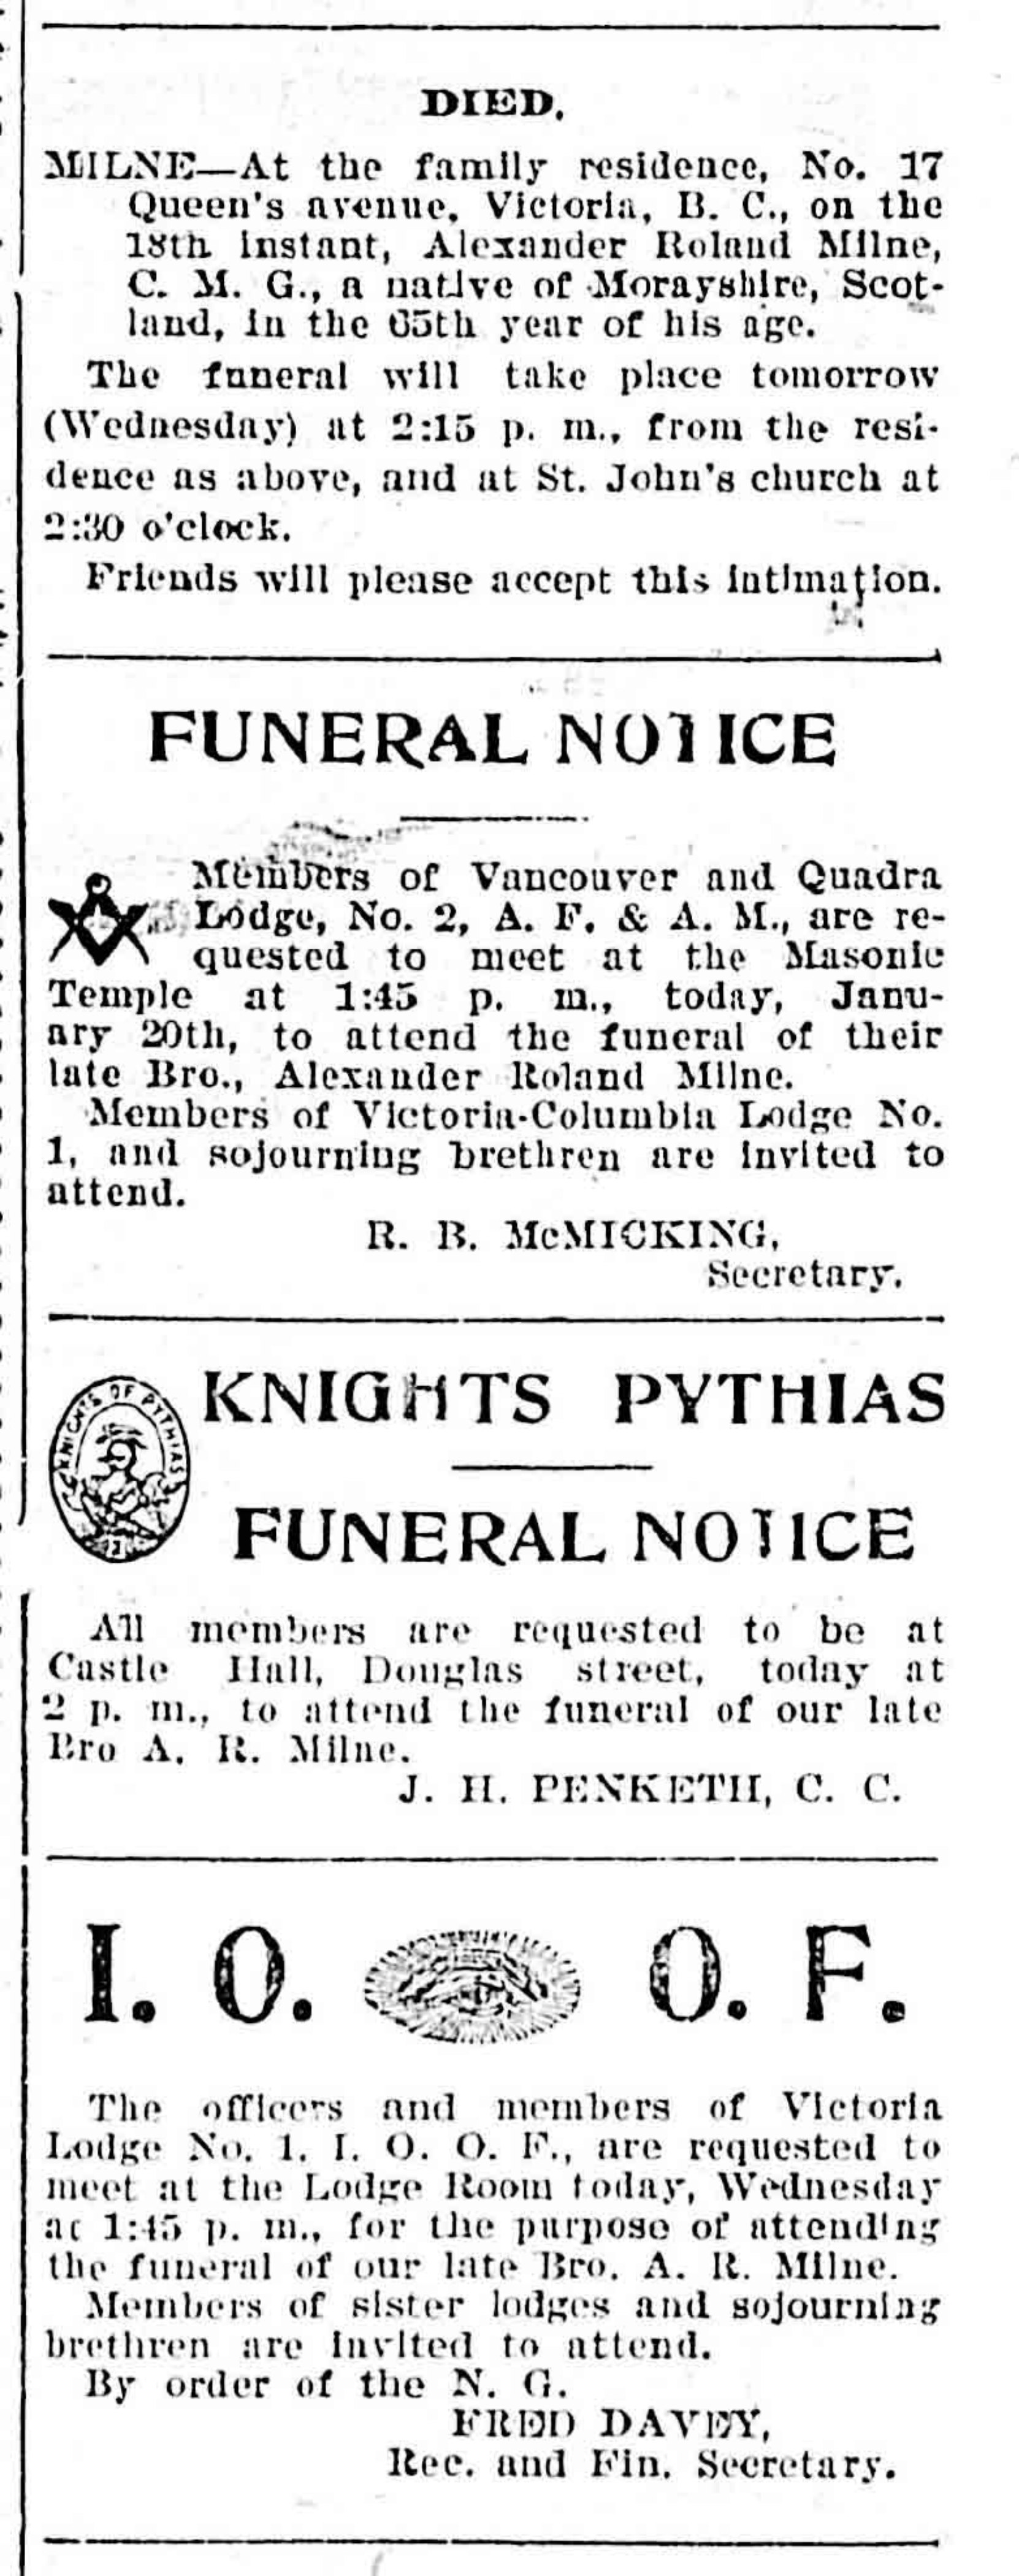 Alexander Roland Milne funeral notices in the Victoria newspapers, January 1904